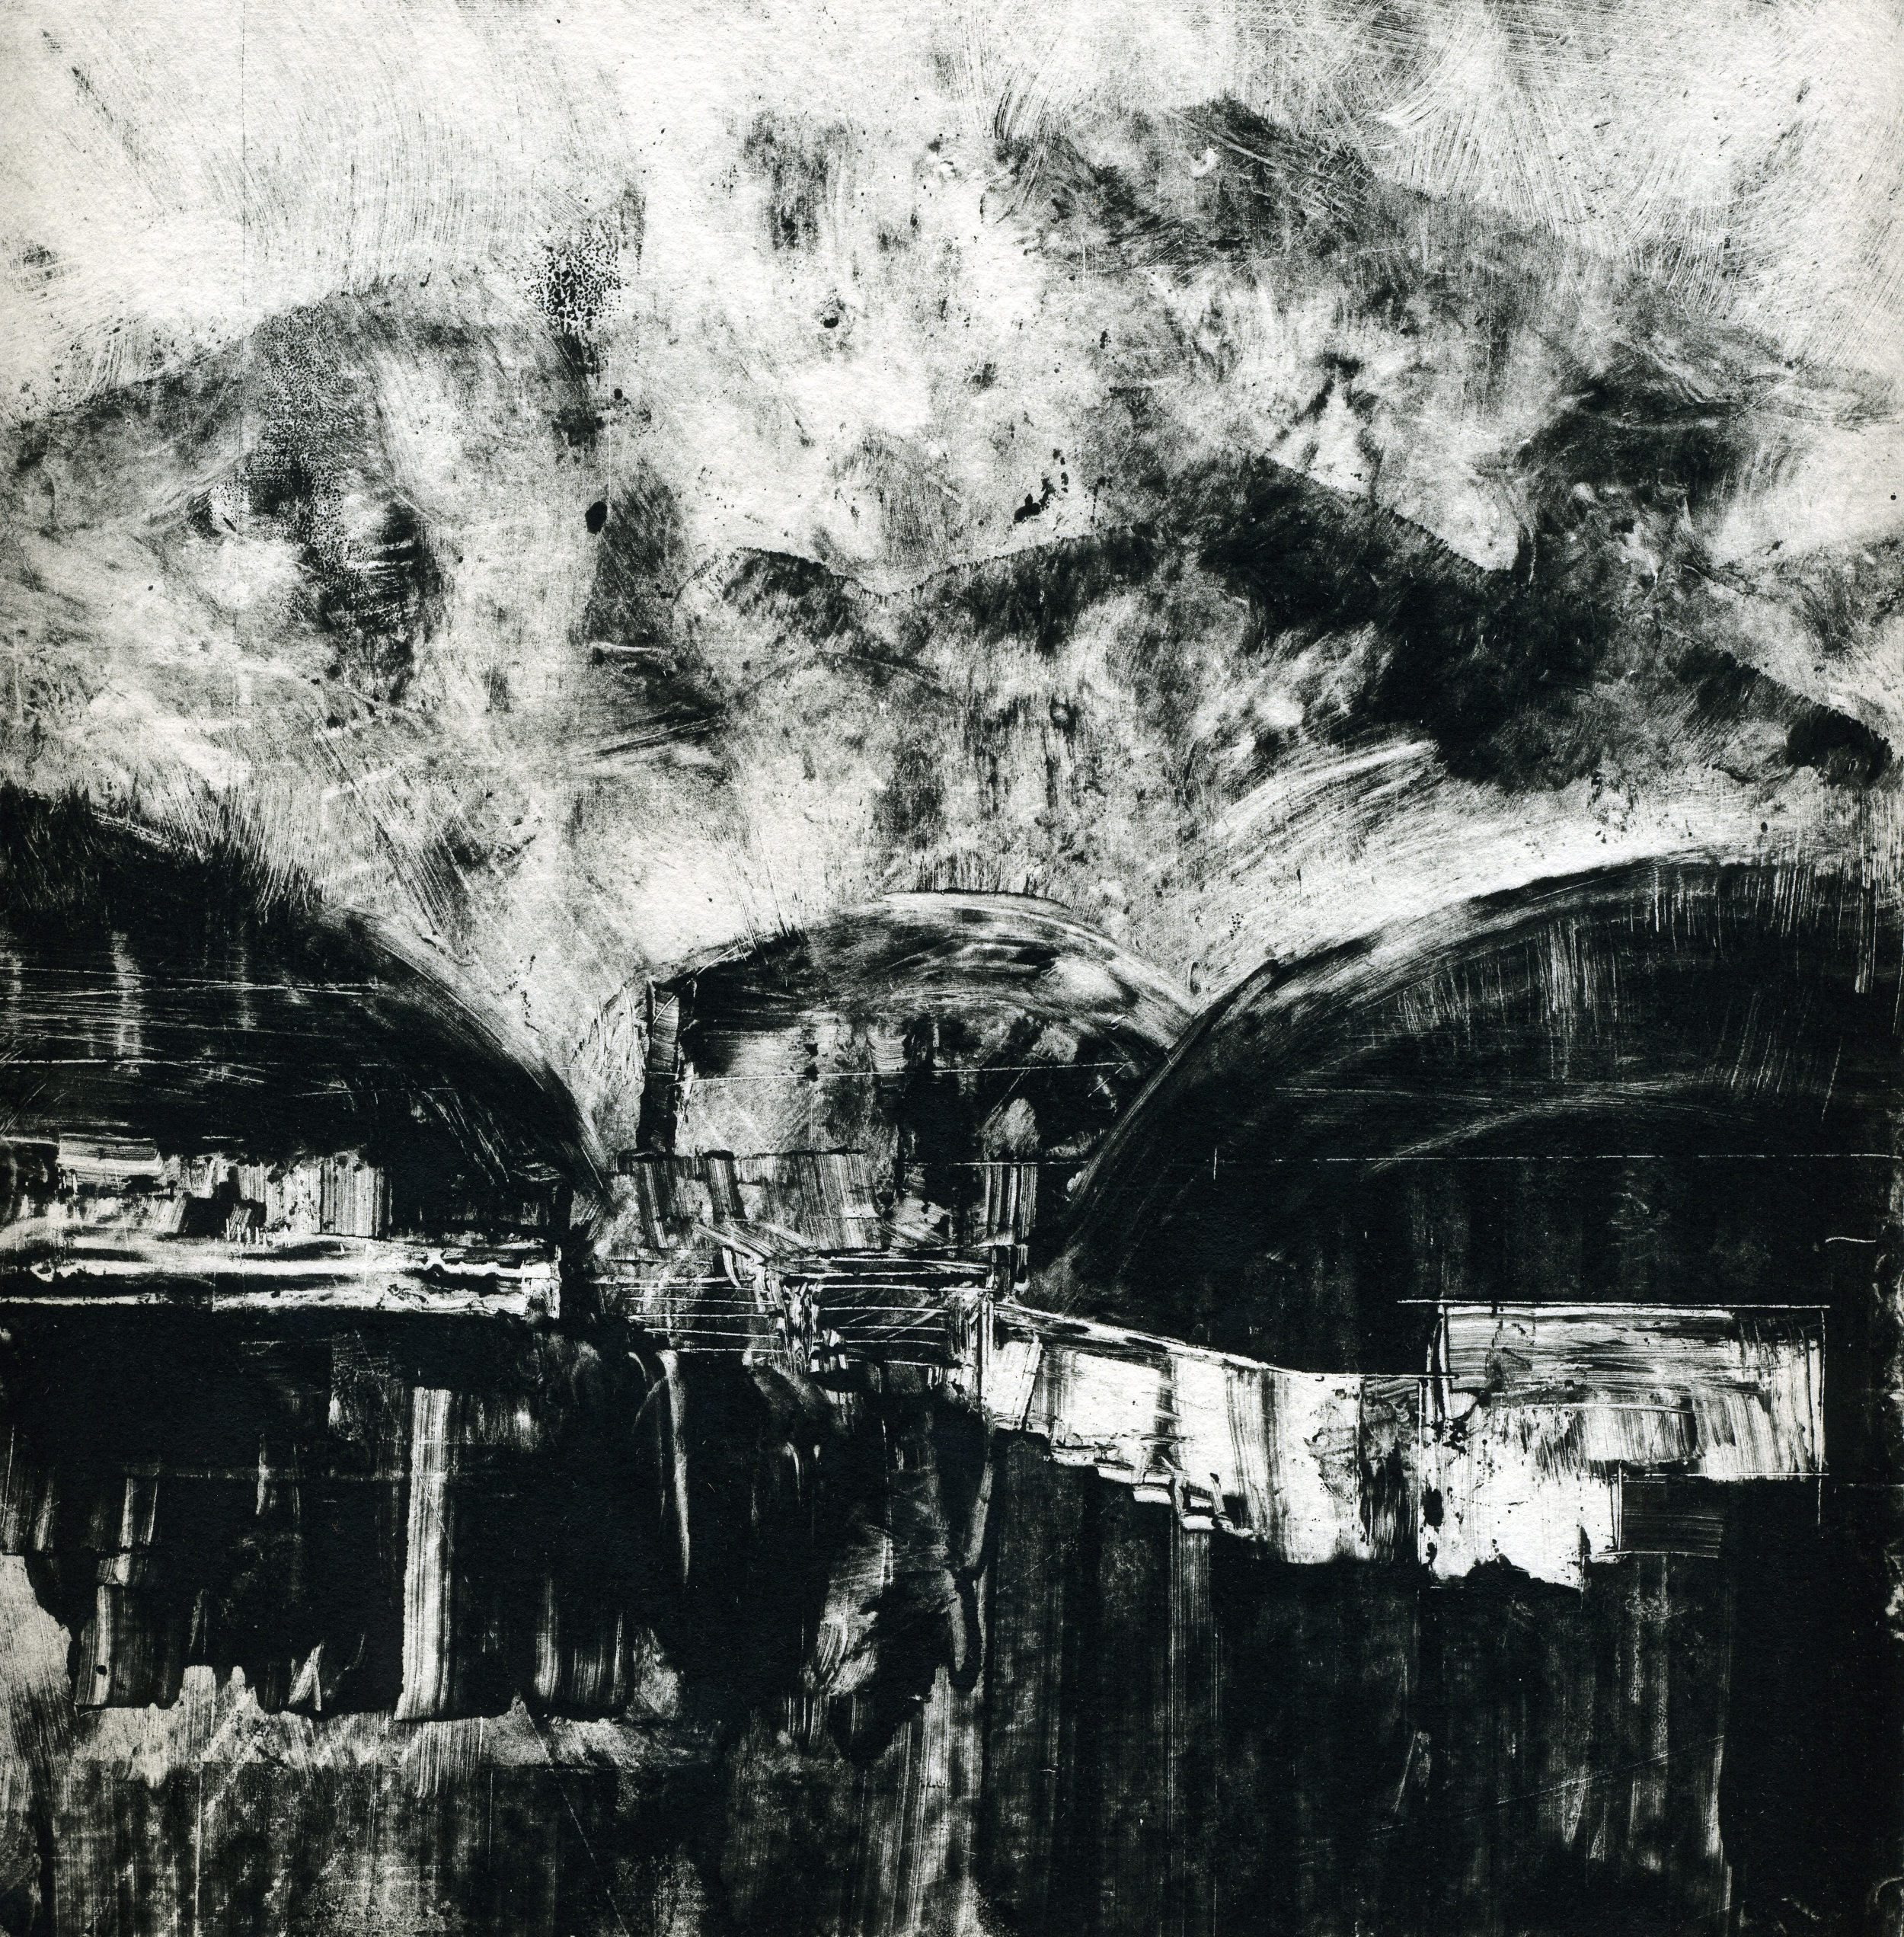 A monotype print by Clive Knights inspired by a visit to the Massa Carrara marble mines